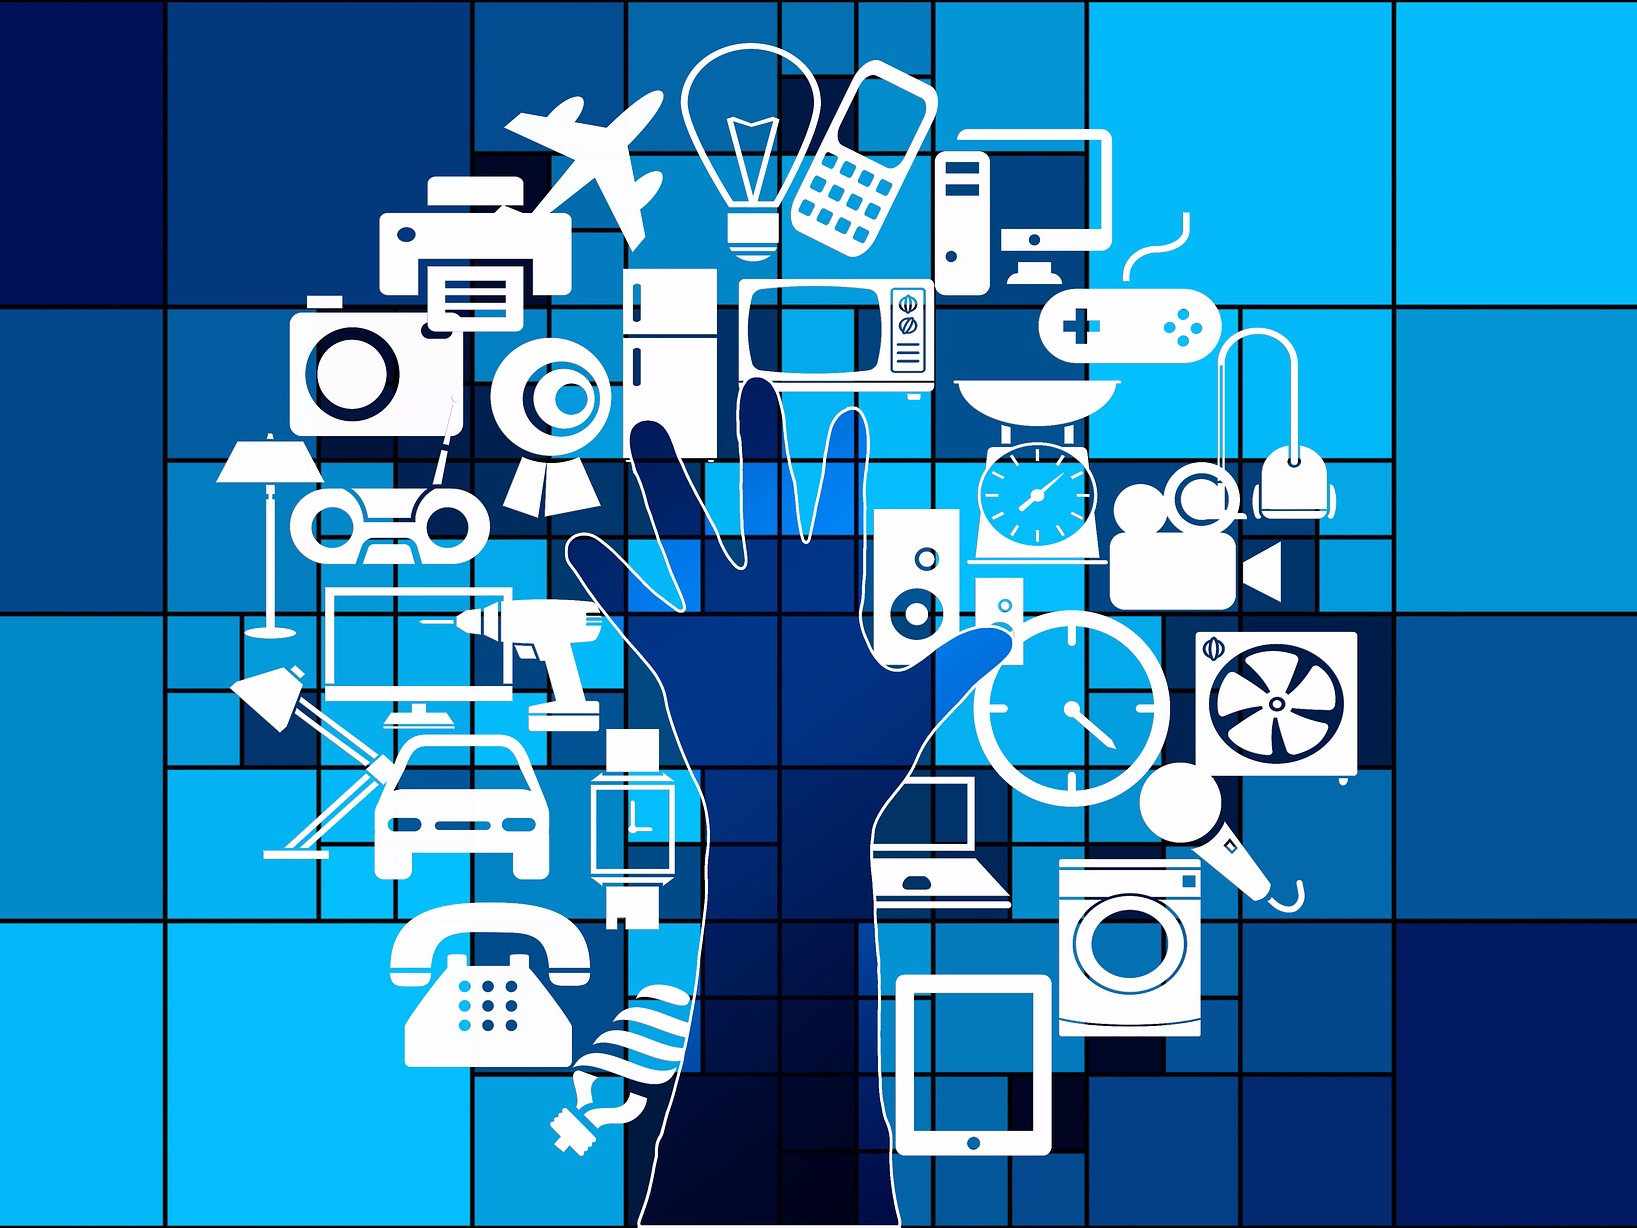 Internet of Things: The Promise of The Future